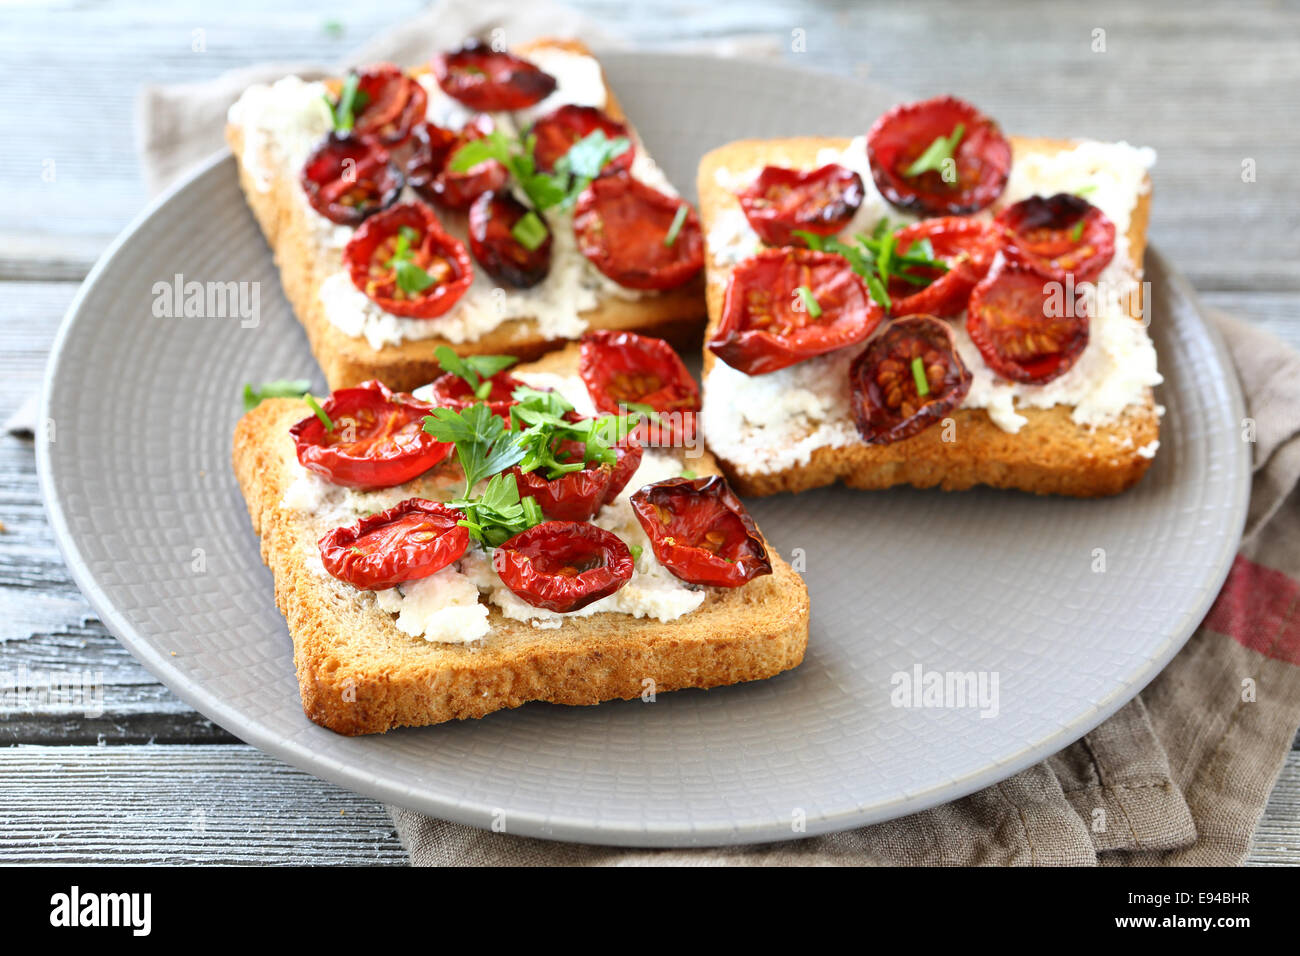 Bruschetta with sun-dried tomatoes and cheese, delicious food - Stock Image